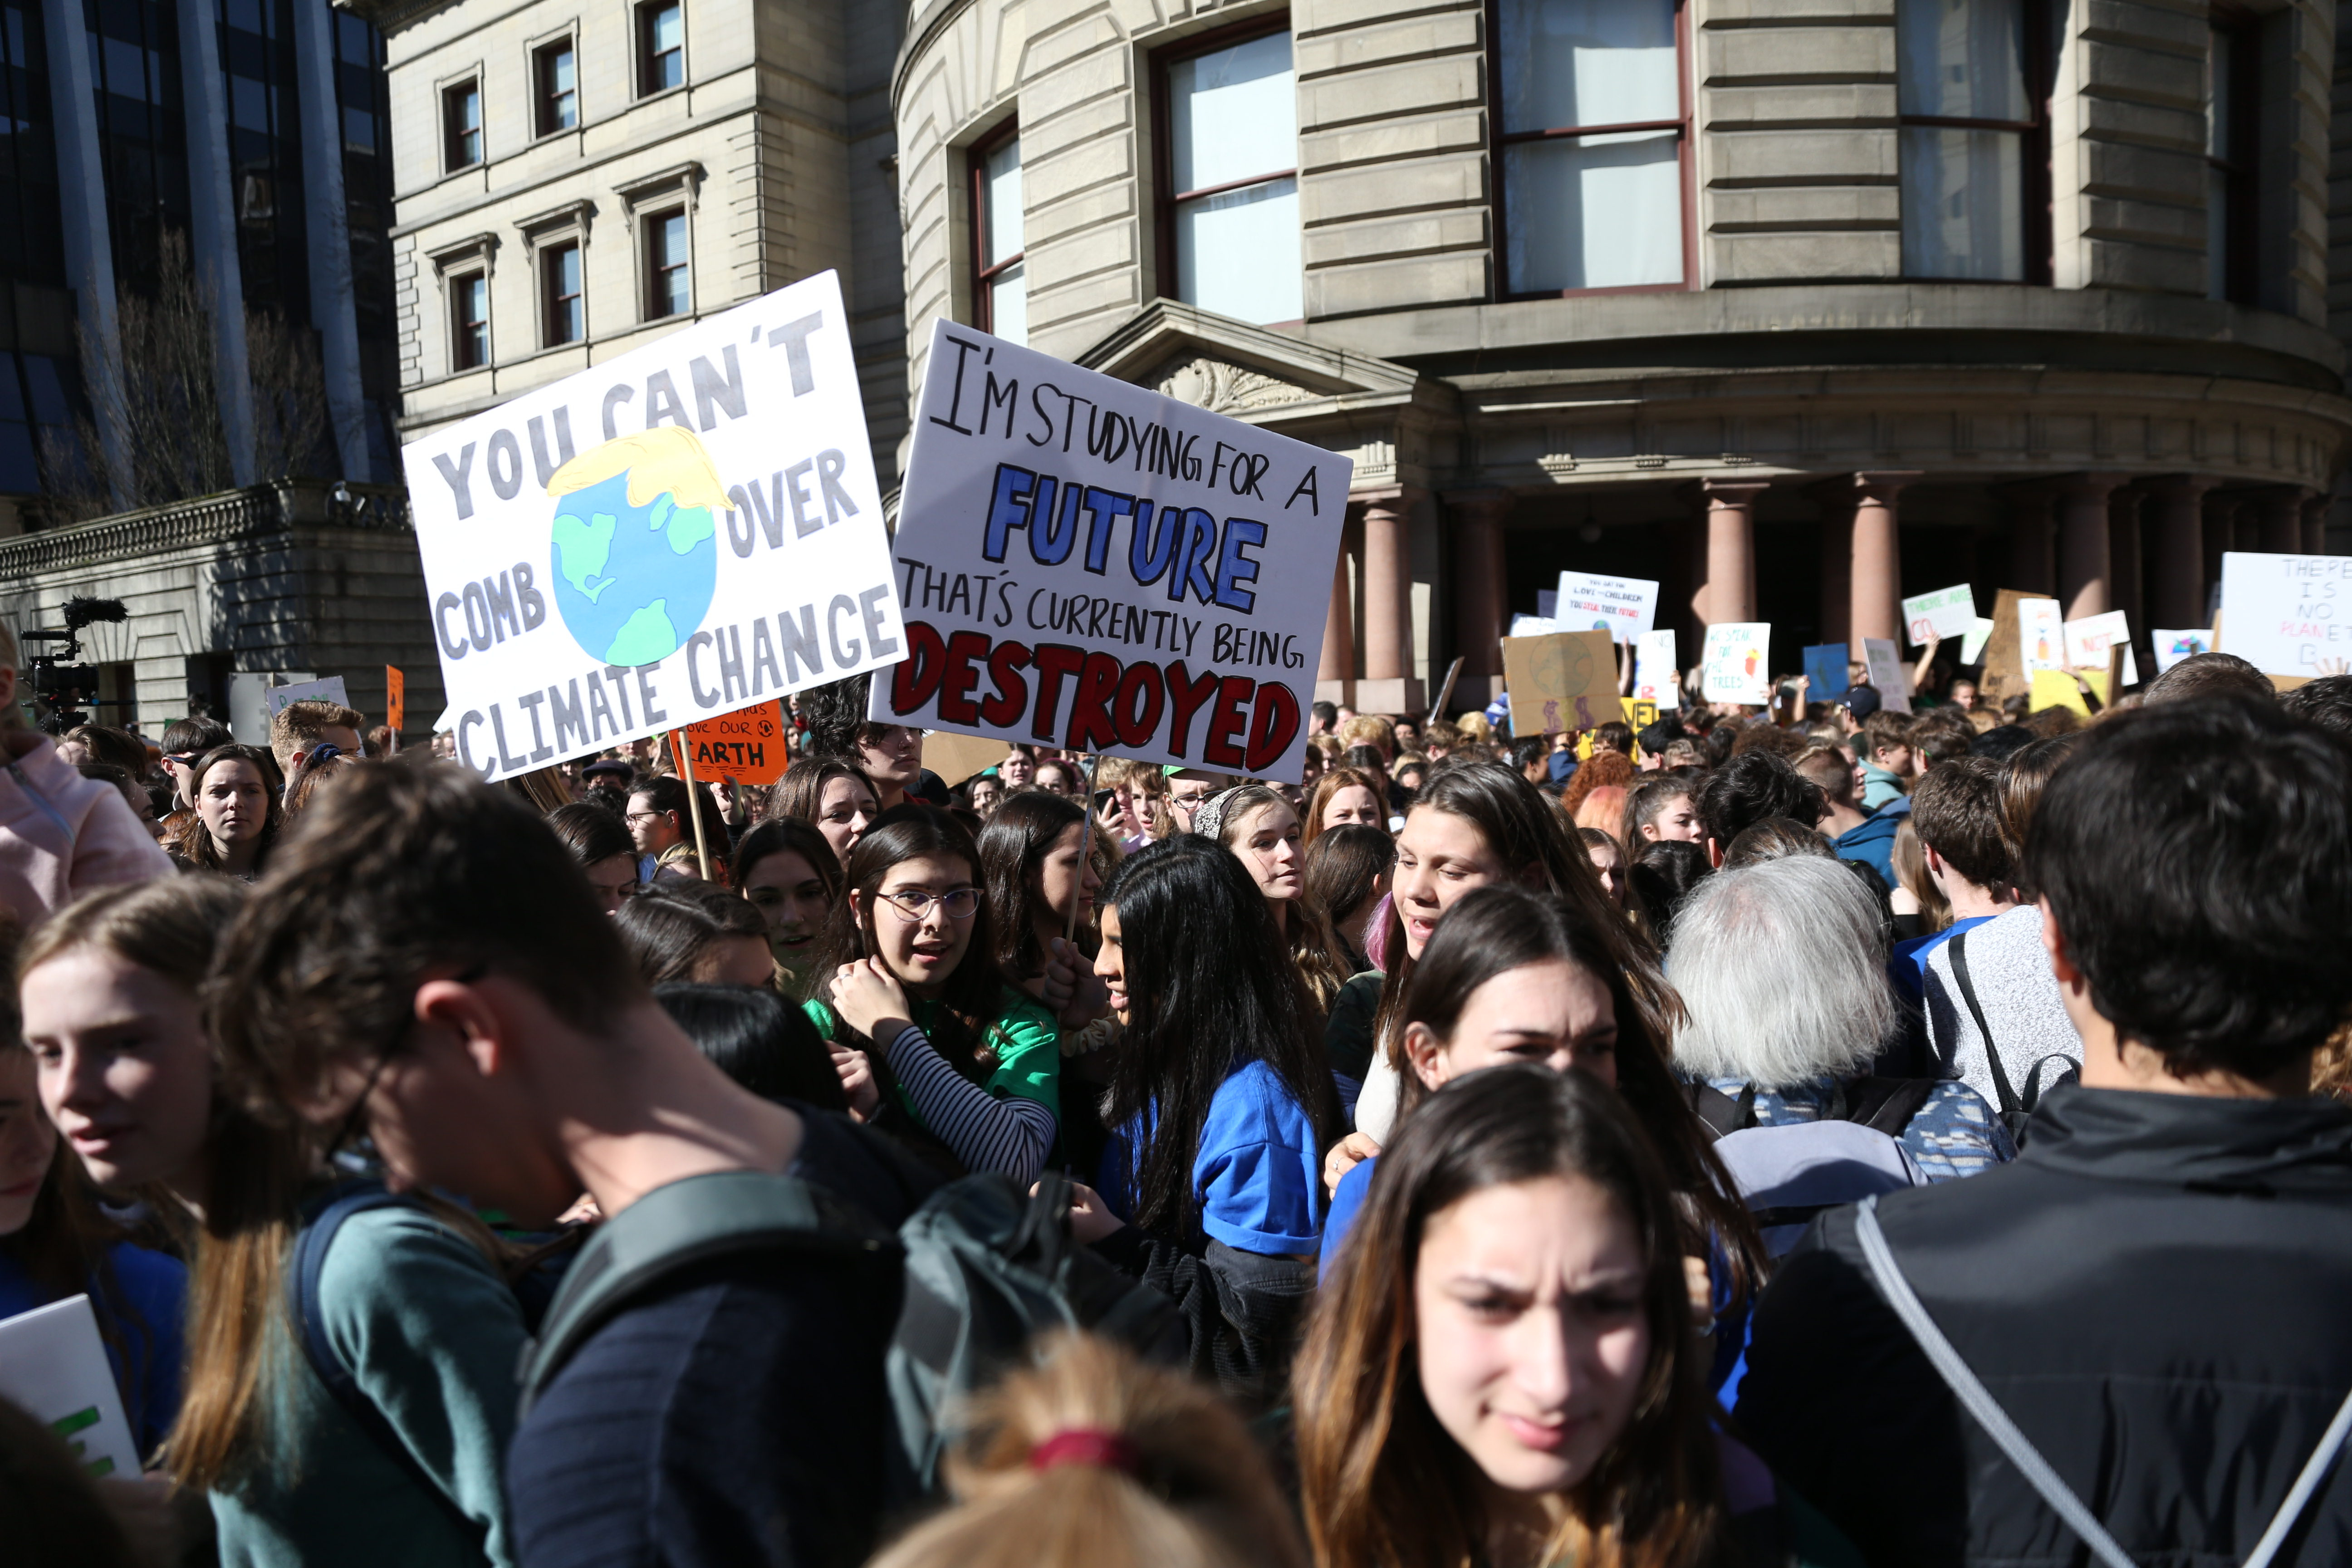 Most Portland-area school districts will excuse students for Friday's climate walkout